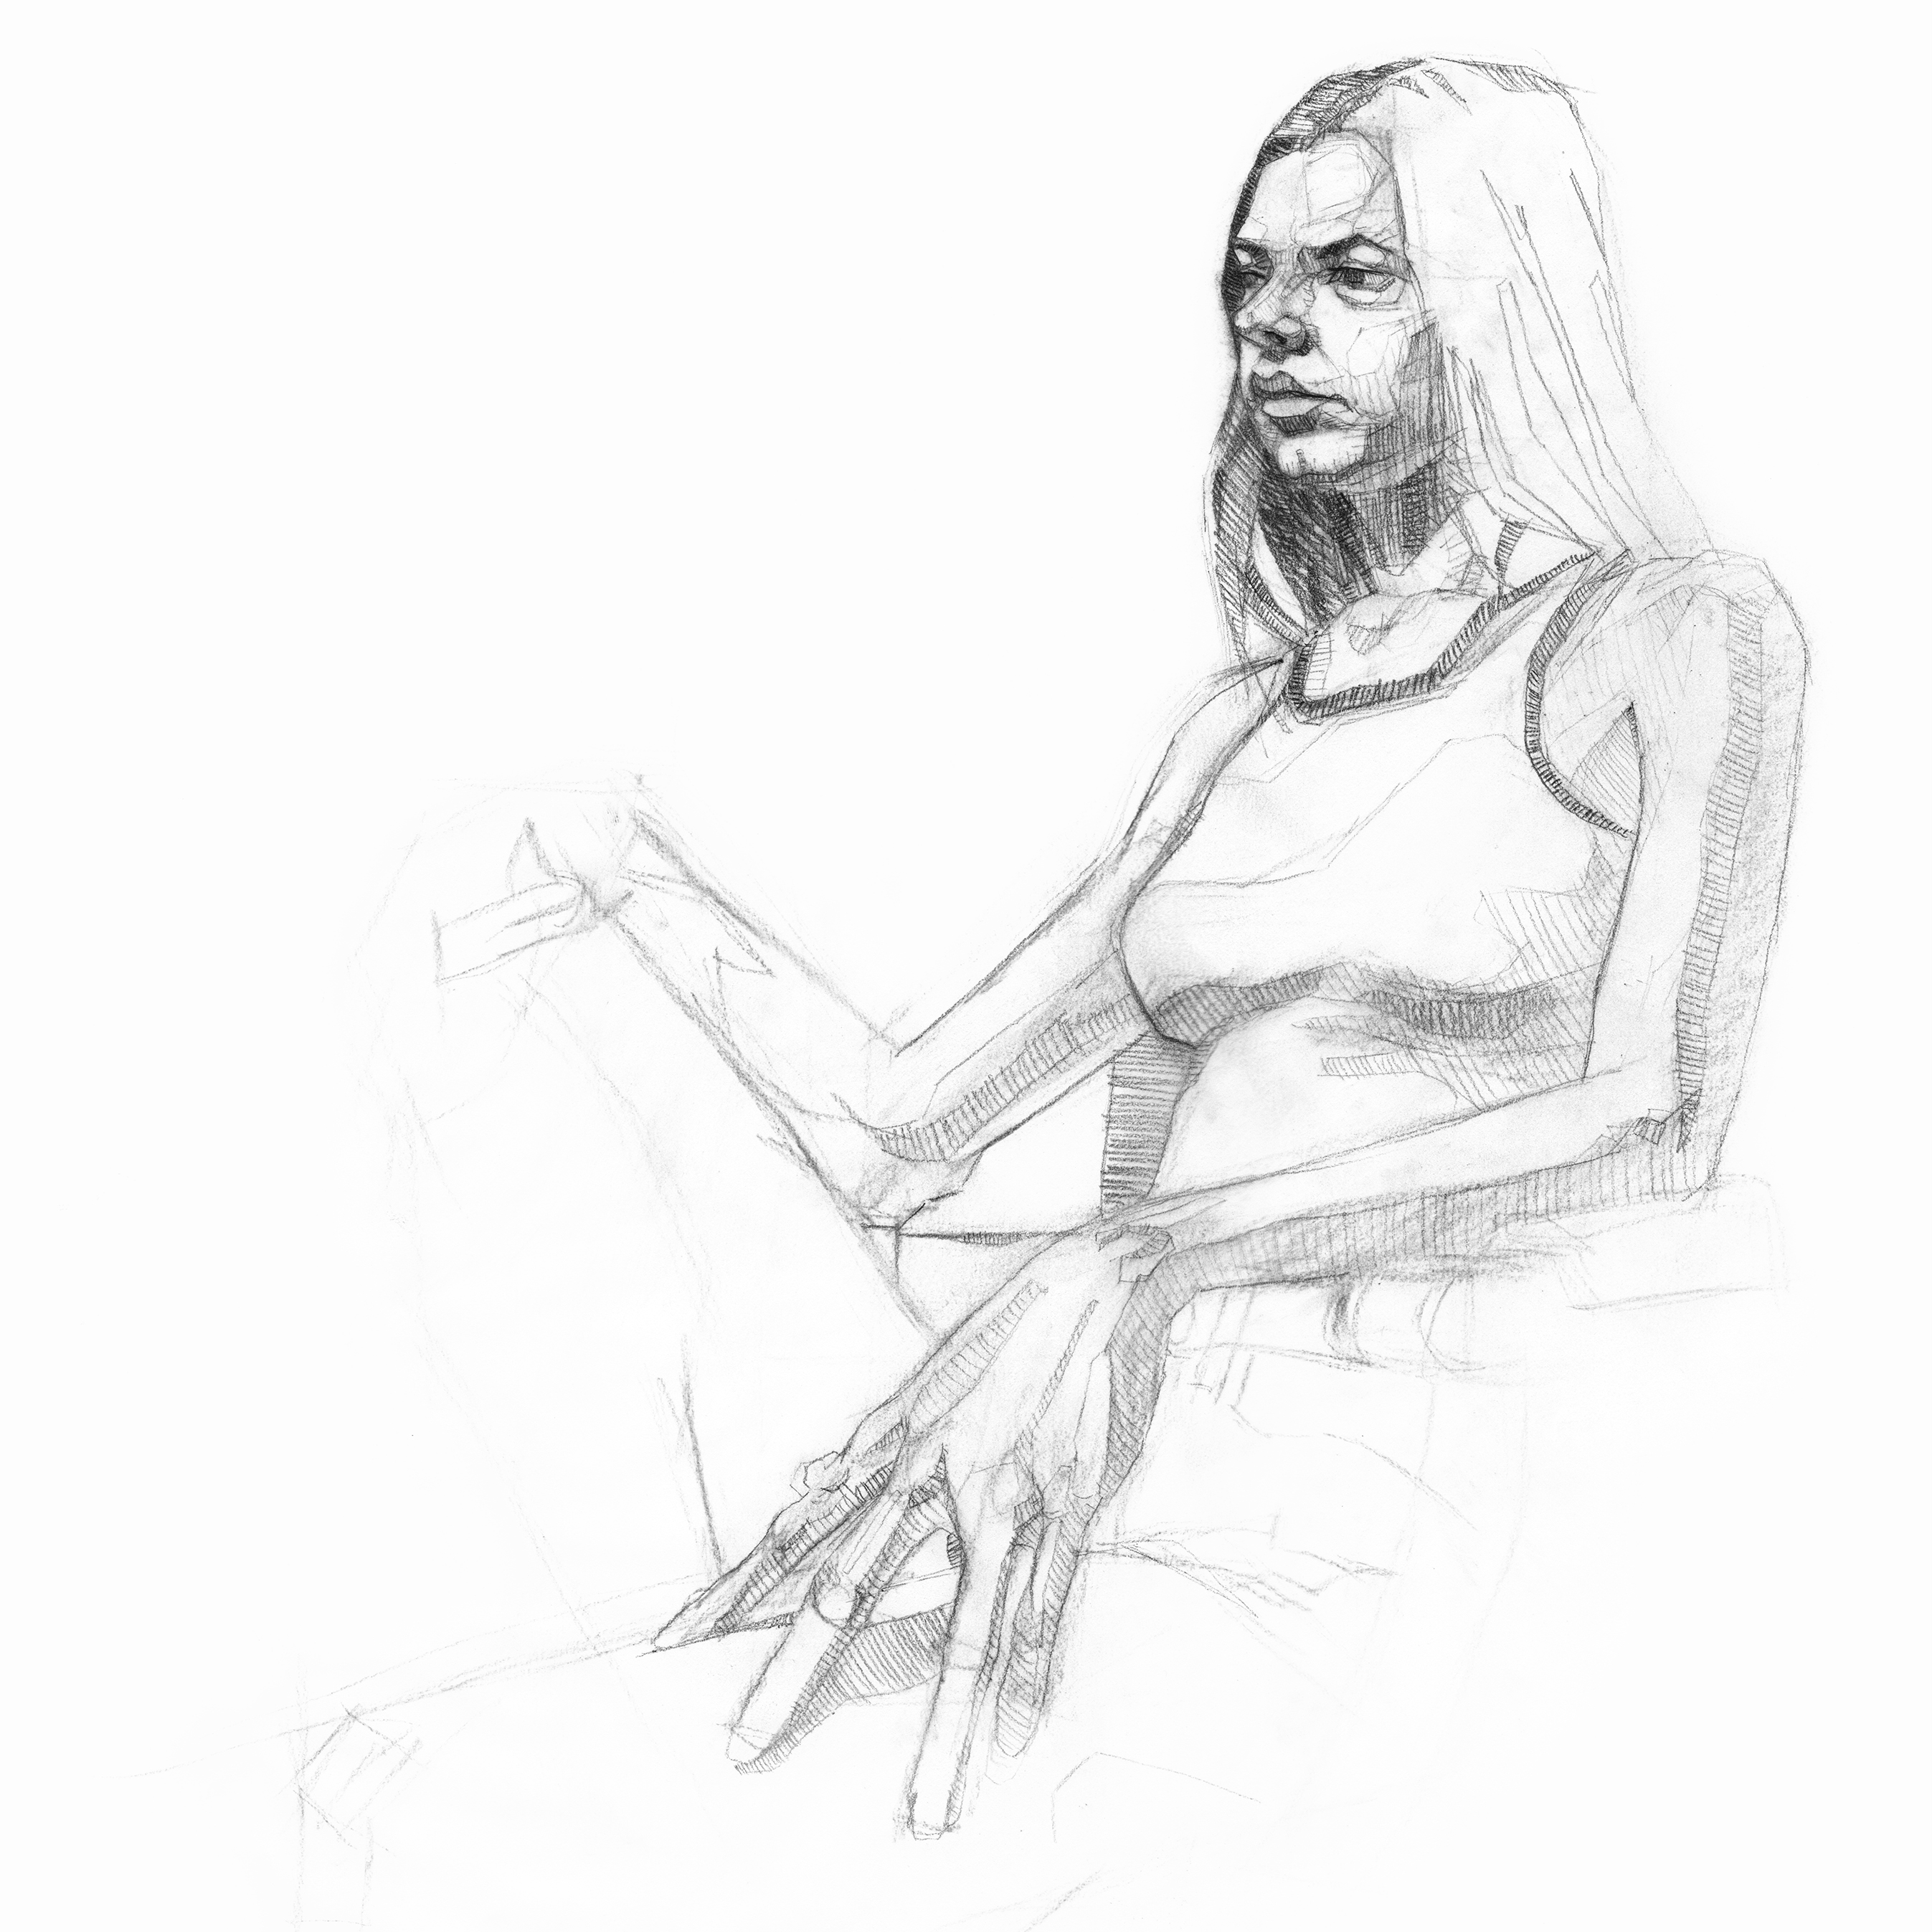 Sketch_Drawing_Female_Woman_Girl_Charcoa